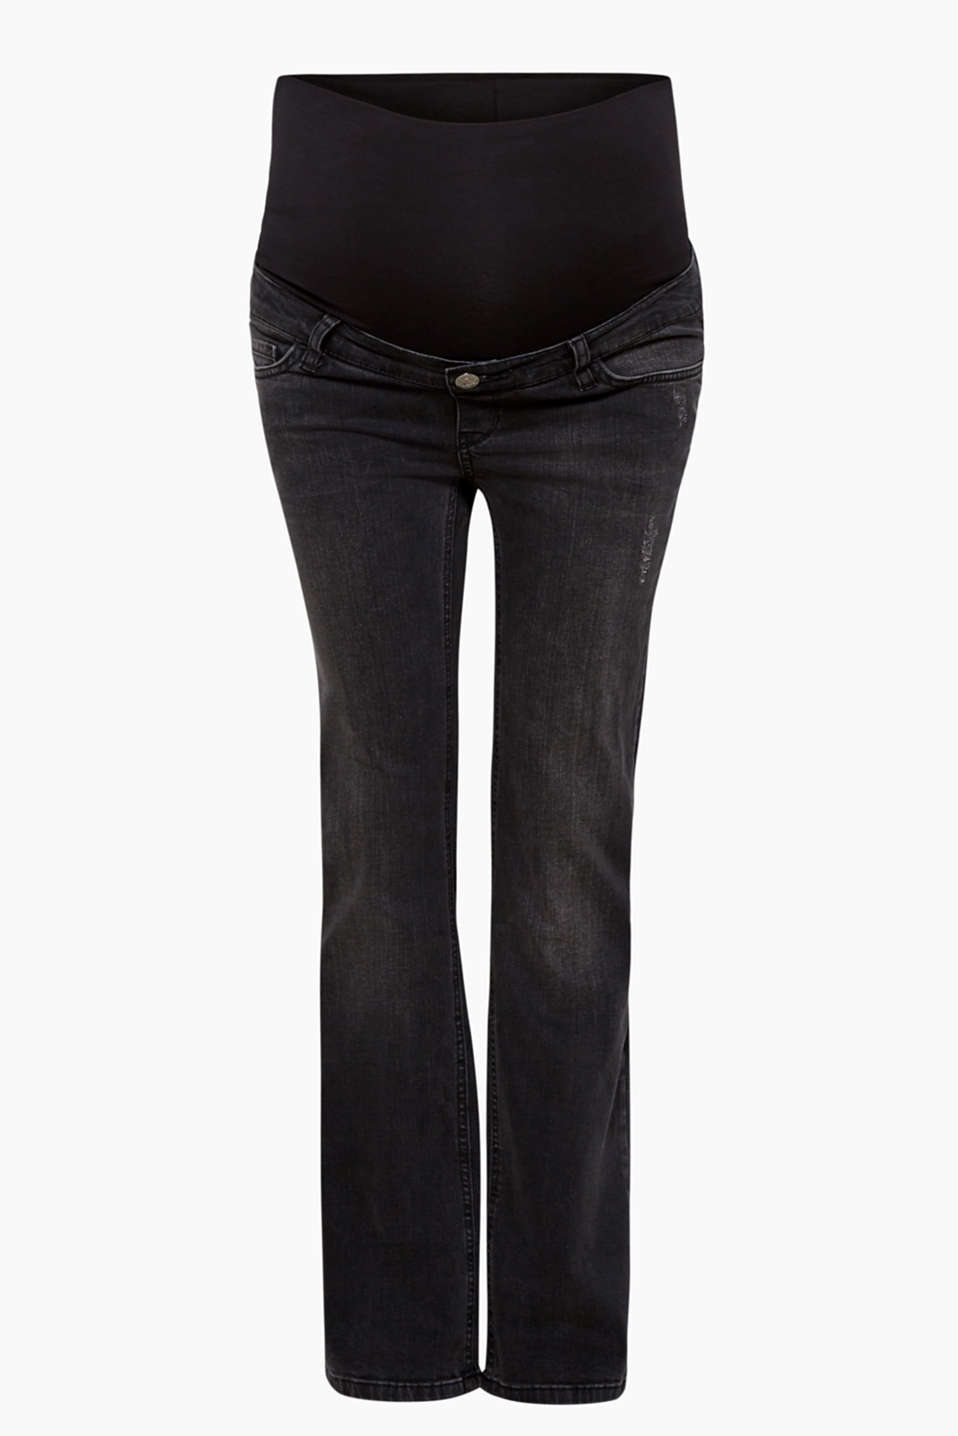 A casual vintage finish and the understated bootcut fit give these stretch jeans their cool and versatile look!